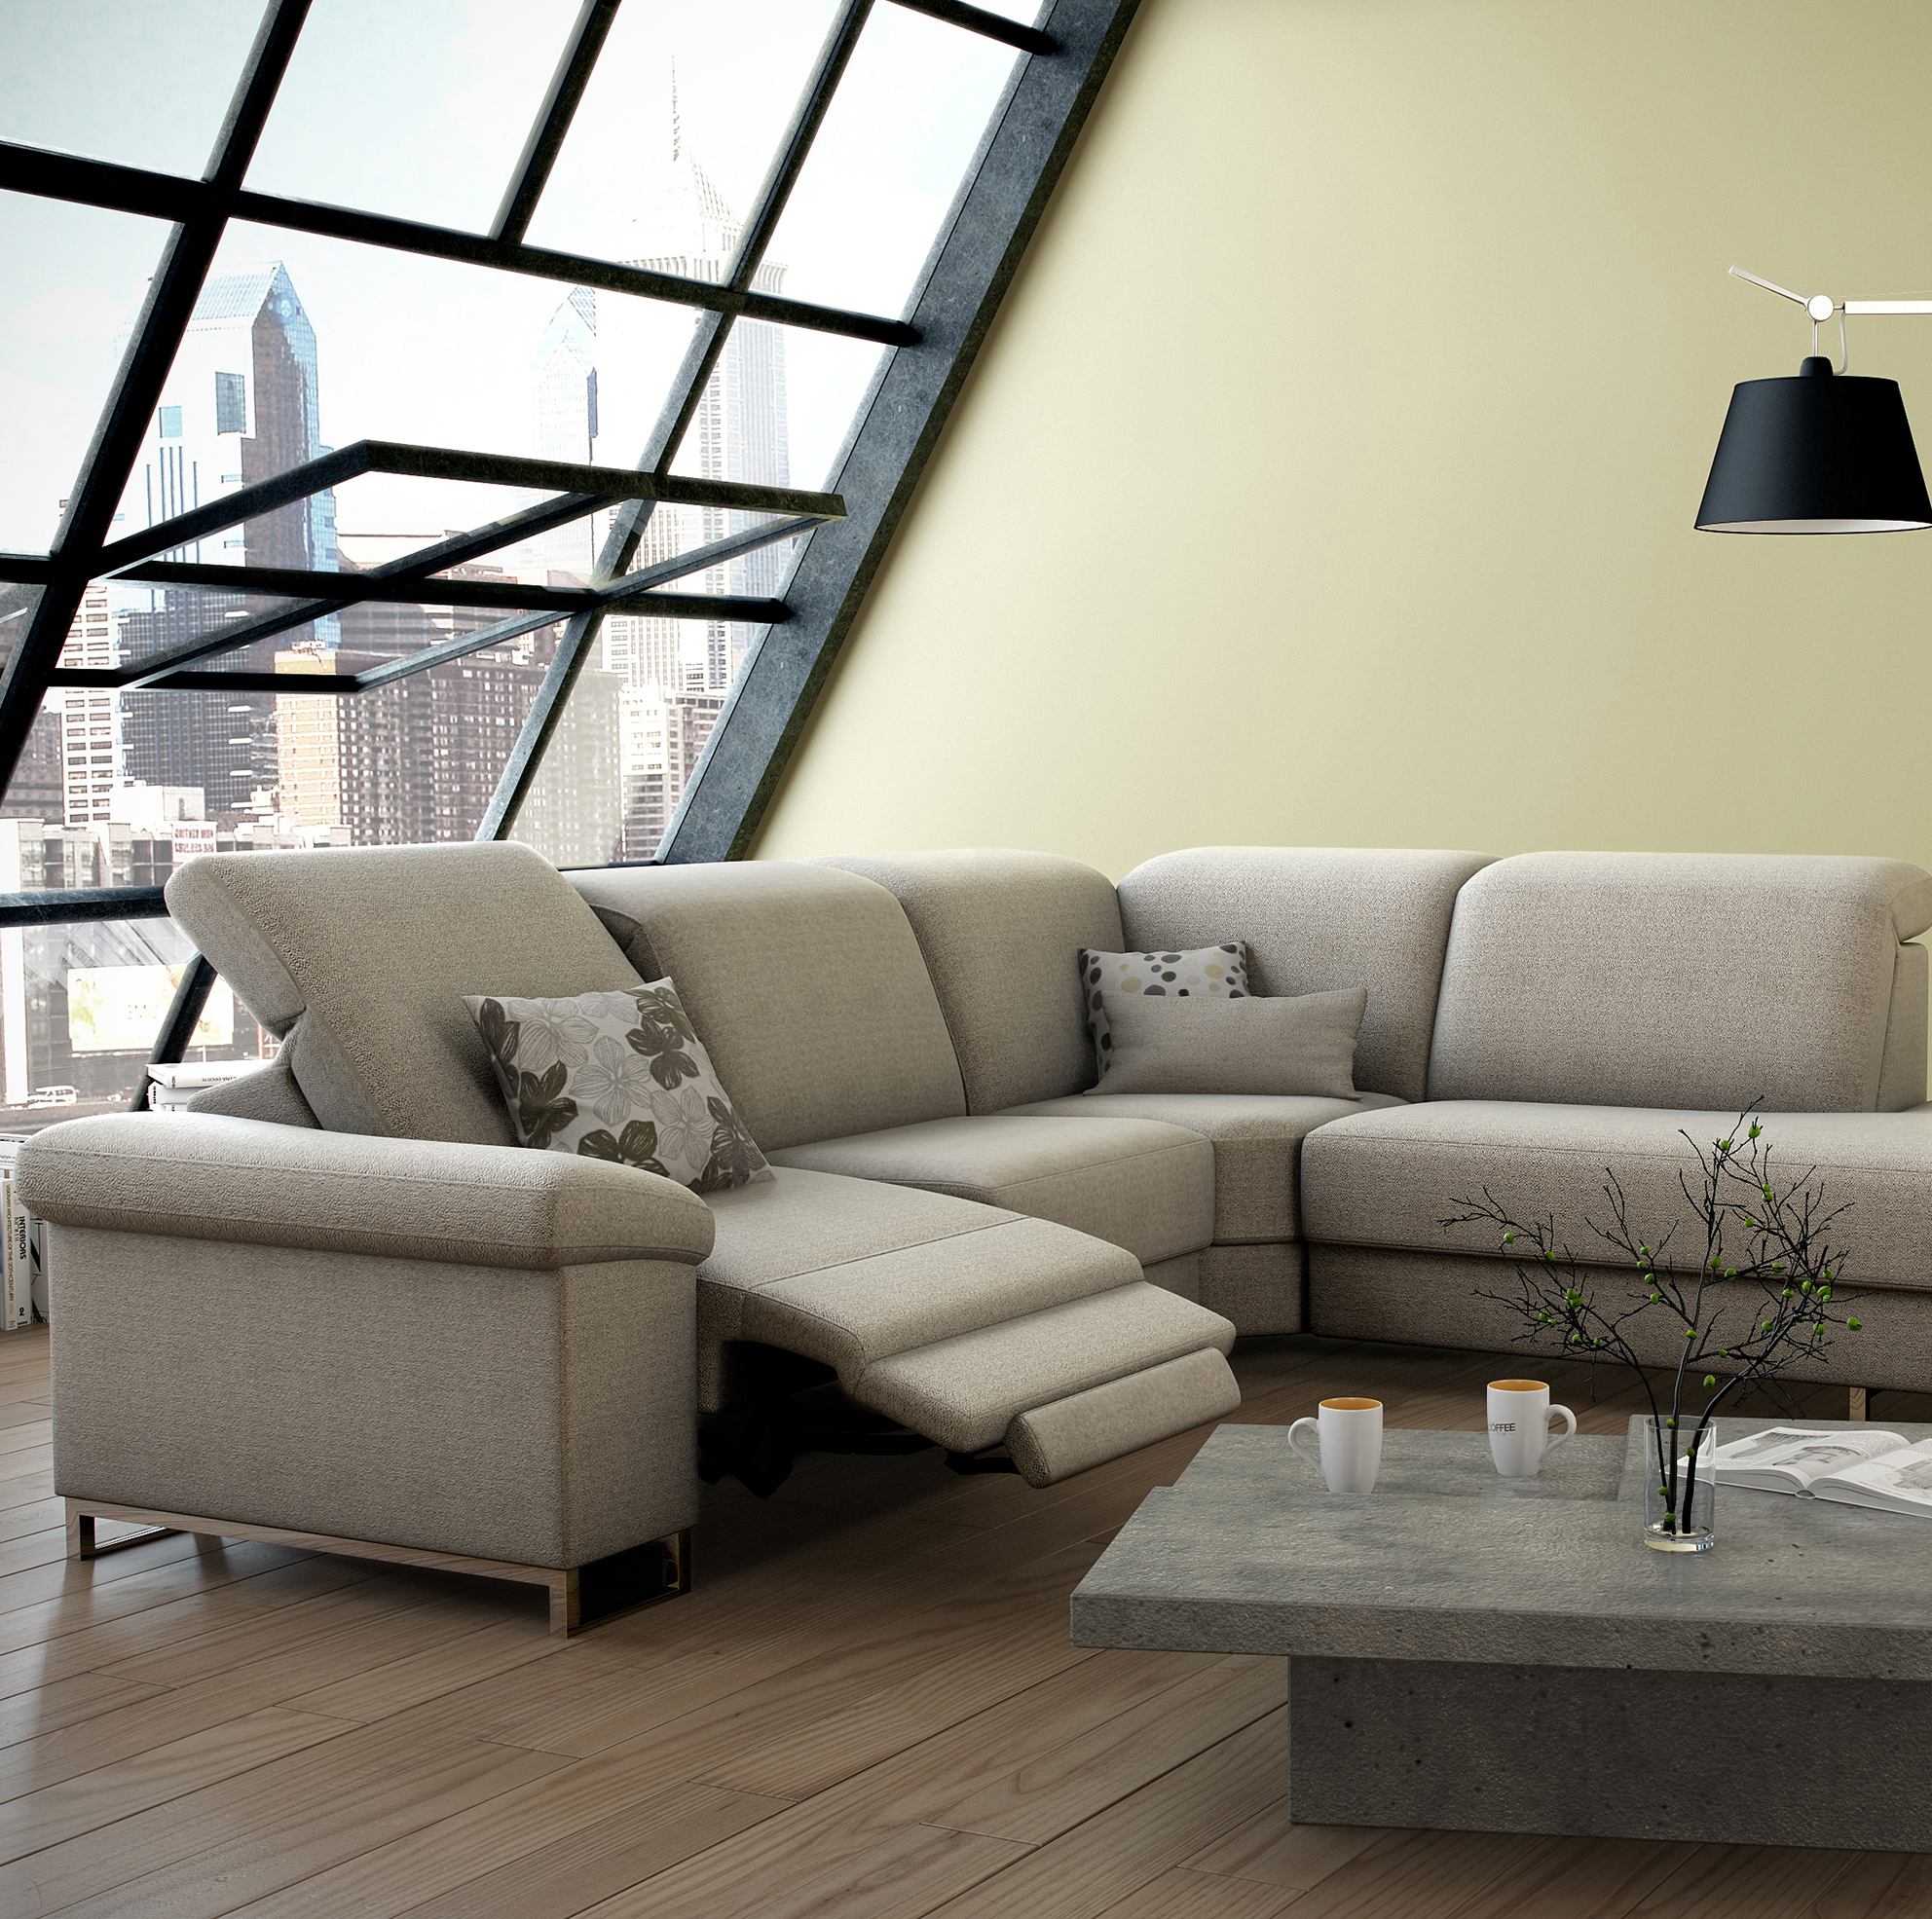 Deimos leather sectional by ROM Belgium at Nova Interiors